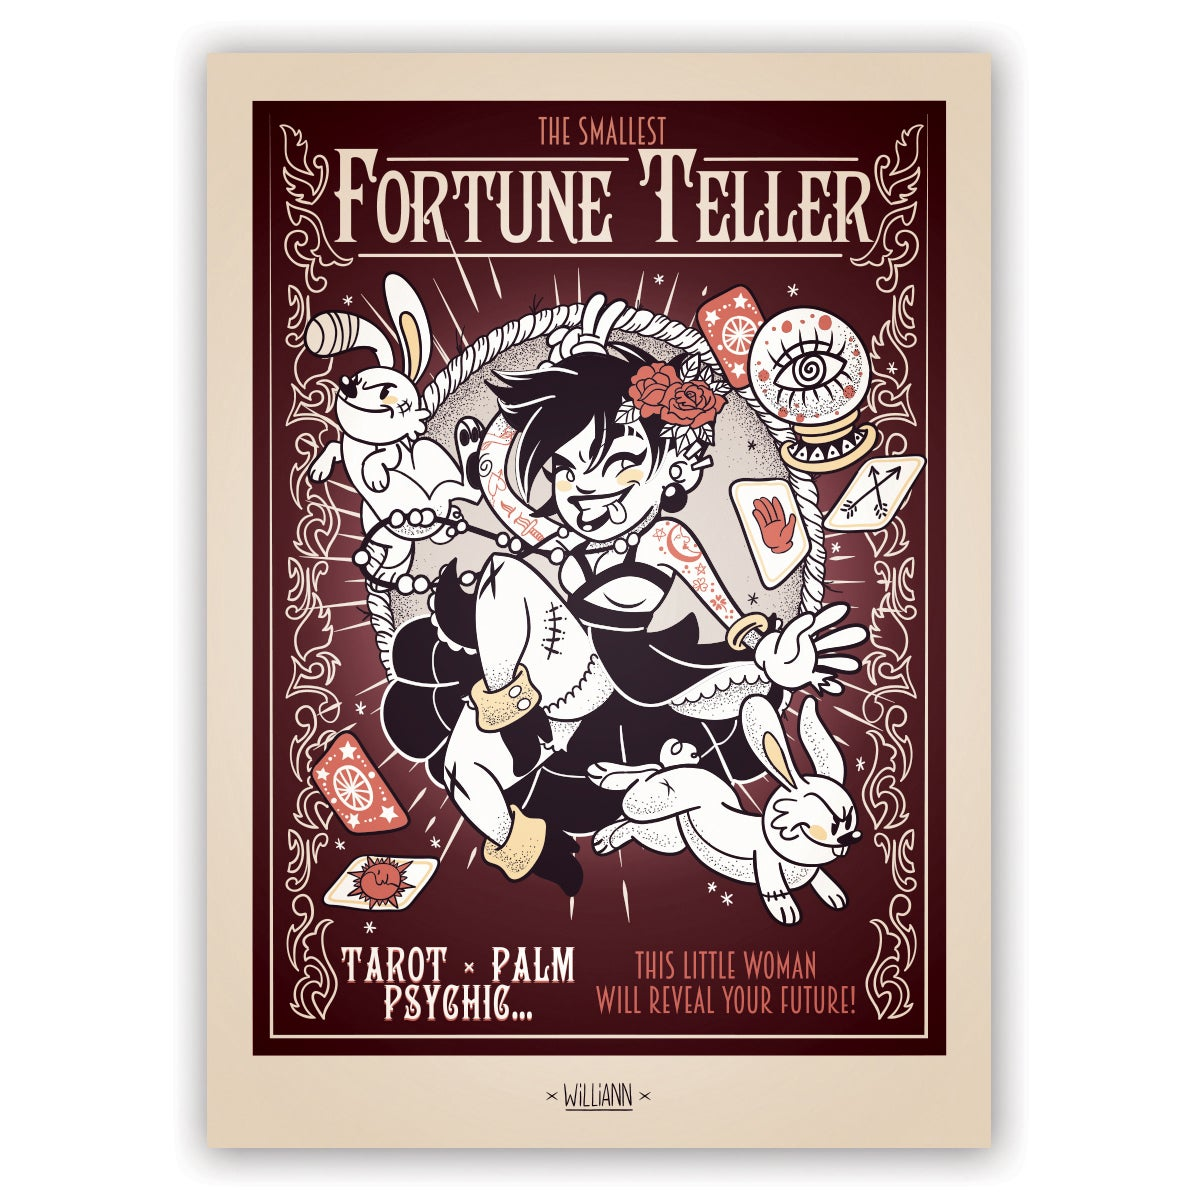 Image of The Smallest Fortune Teller